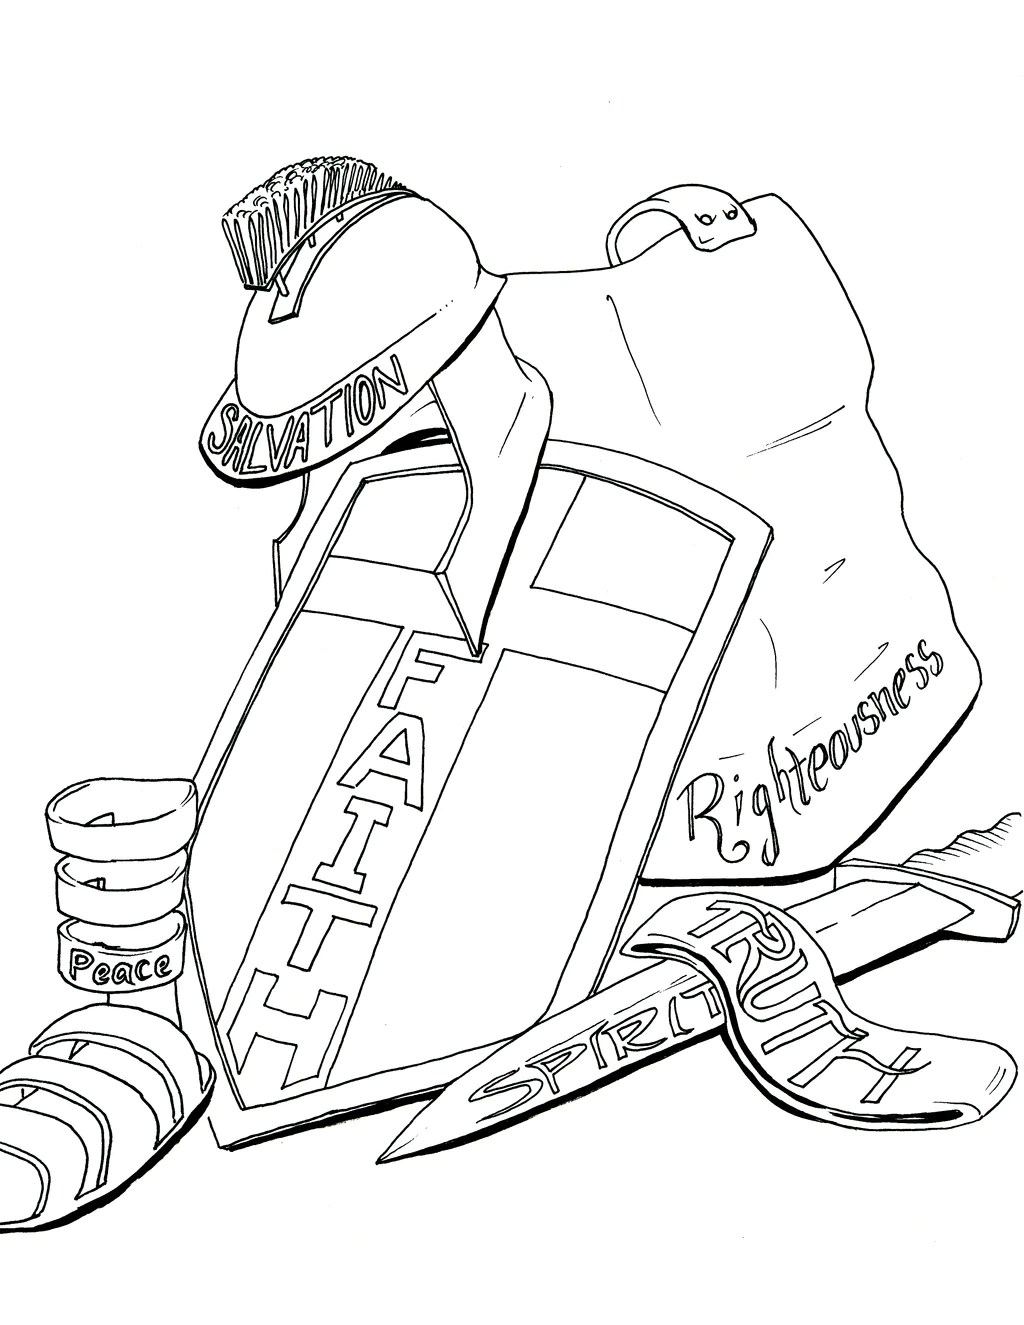 Armor Of God Coloring Sheet : armor, coloring, sheet, Armor, Coloring